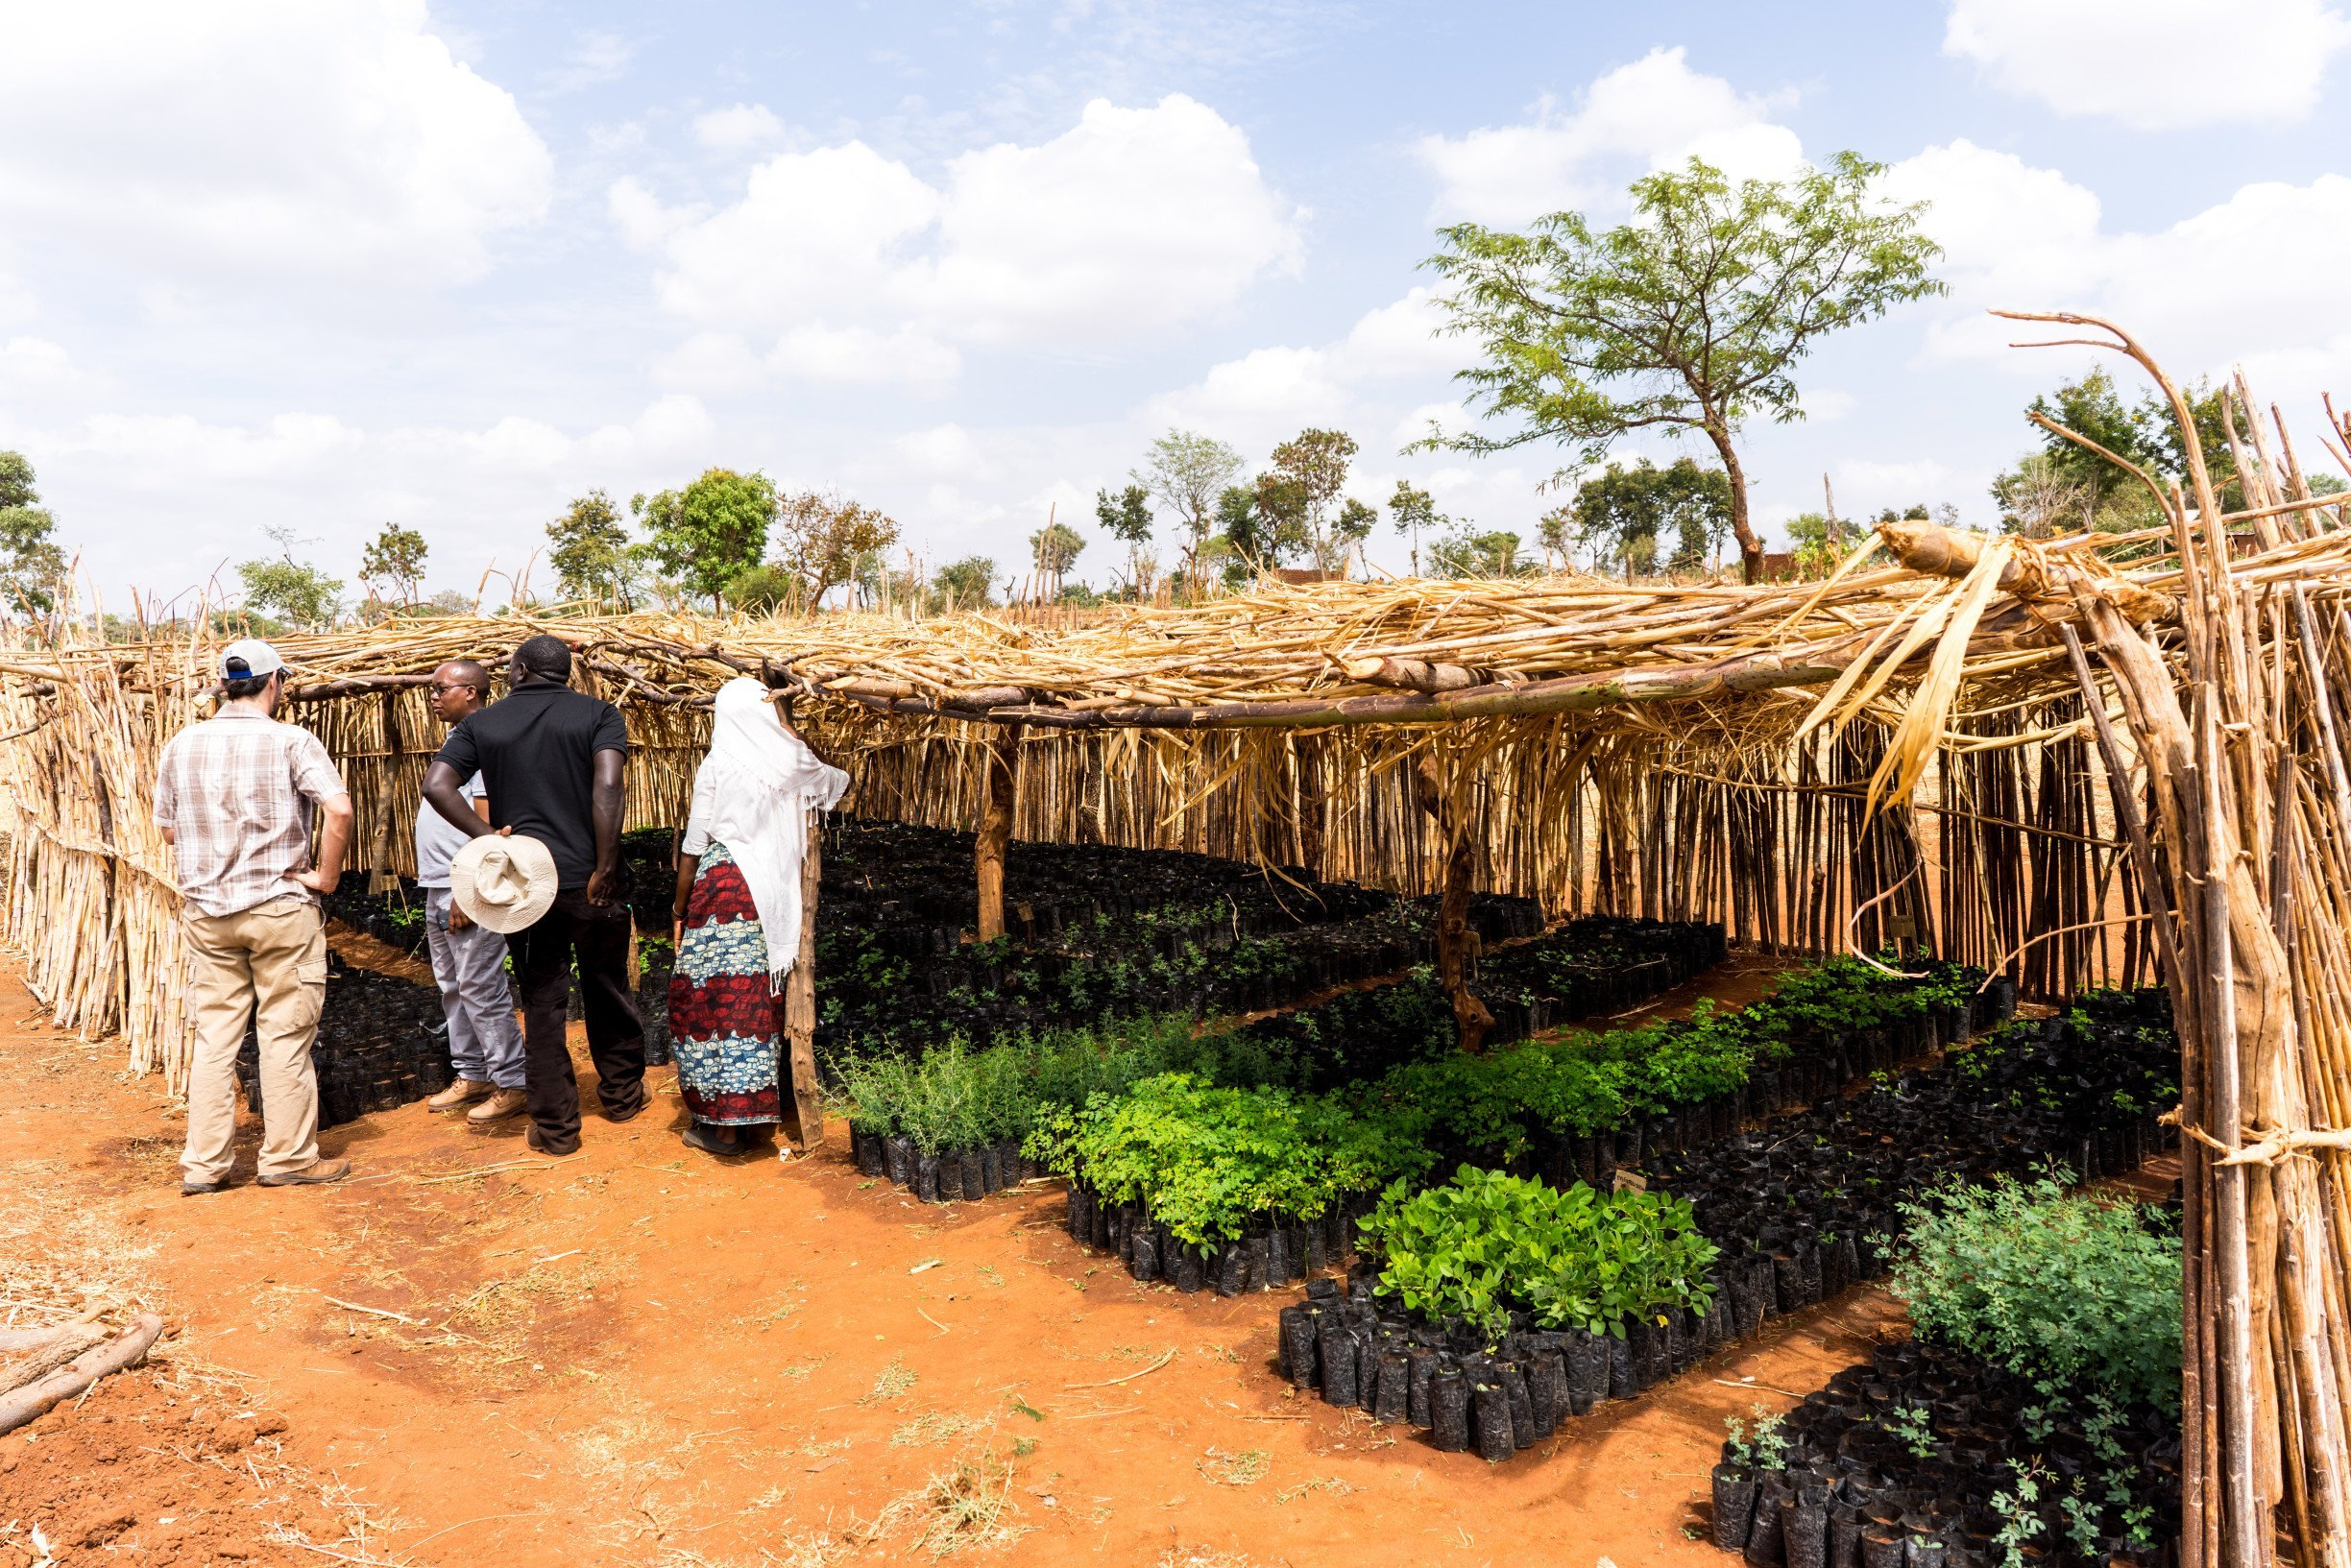 two-million-trees-planted-displate-tanzania-trees-for-the-future